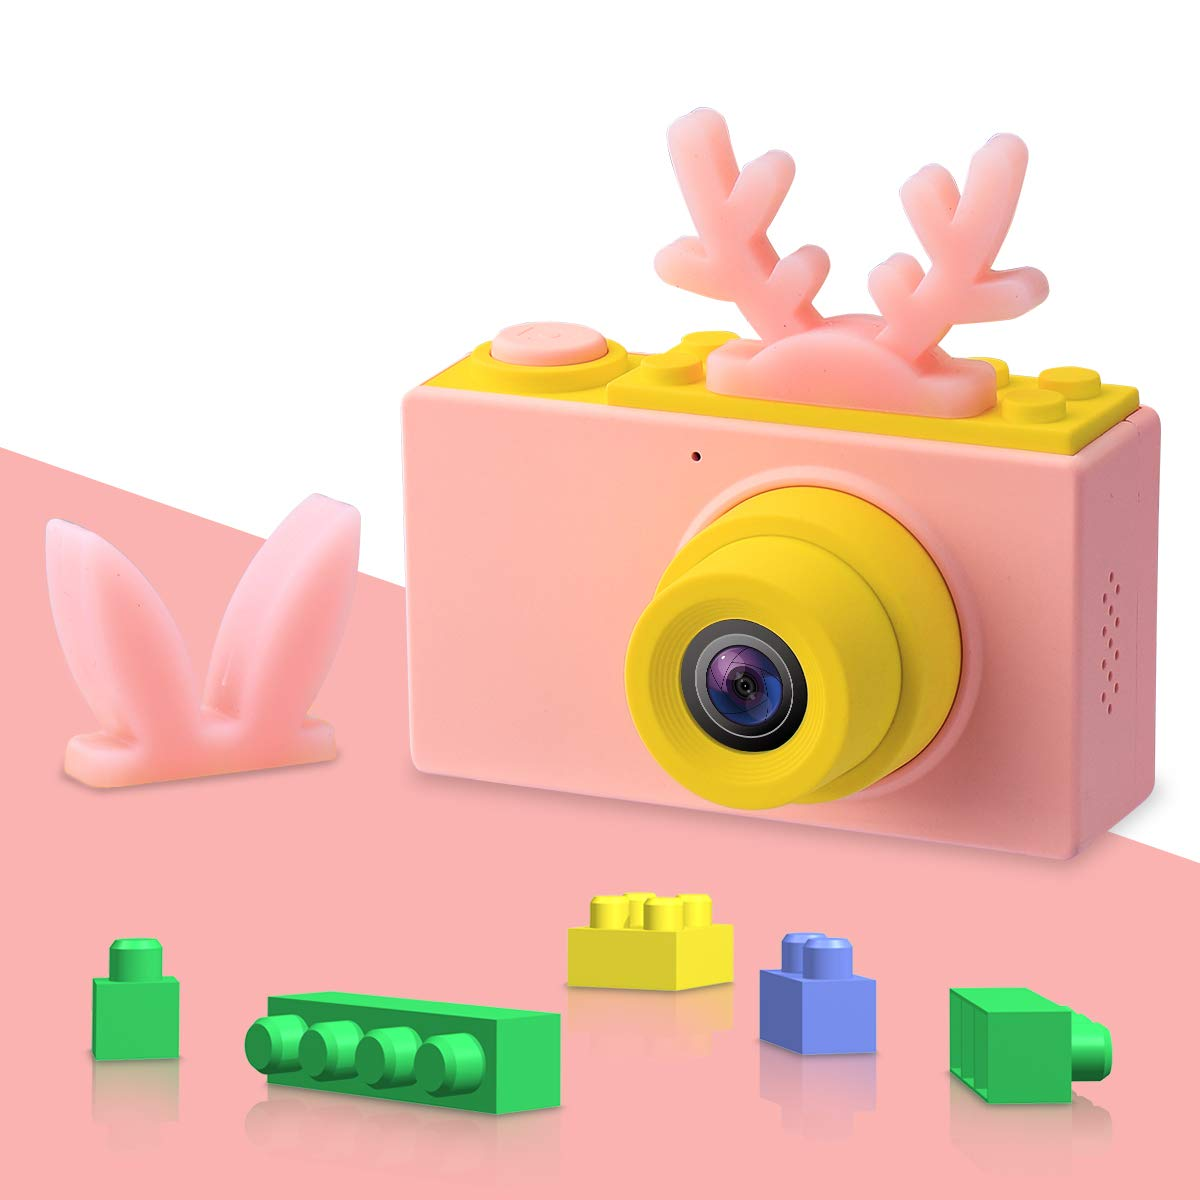 Kids Digital Cameras for Boys HD 1080P Video Camera for Kids Children Selfie Camera Kids Toy Cameras Mini Child Camcorder for Age 3-10 Boys/Girls Pink by Joytrip (Image #5)